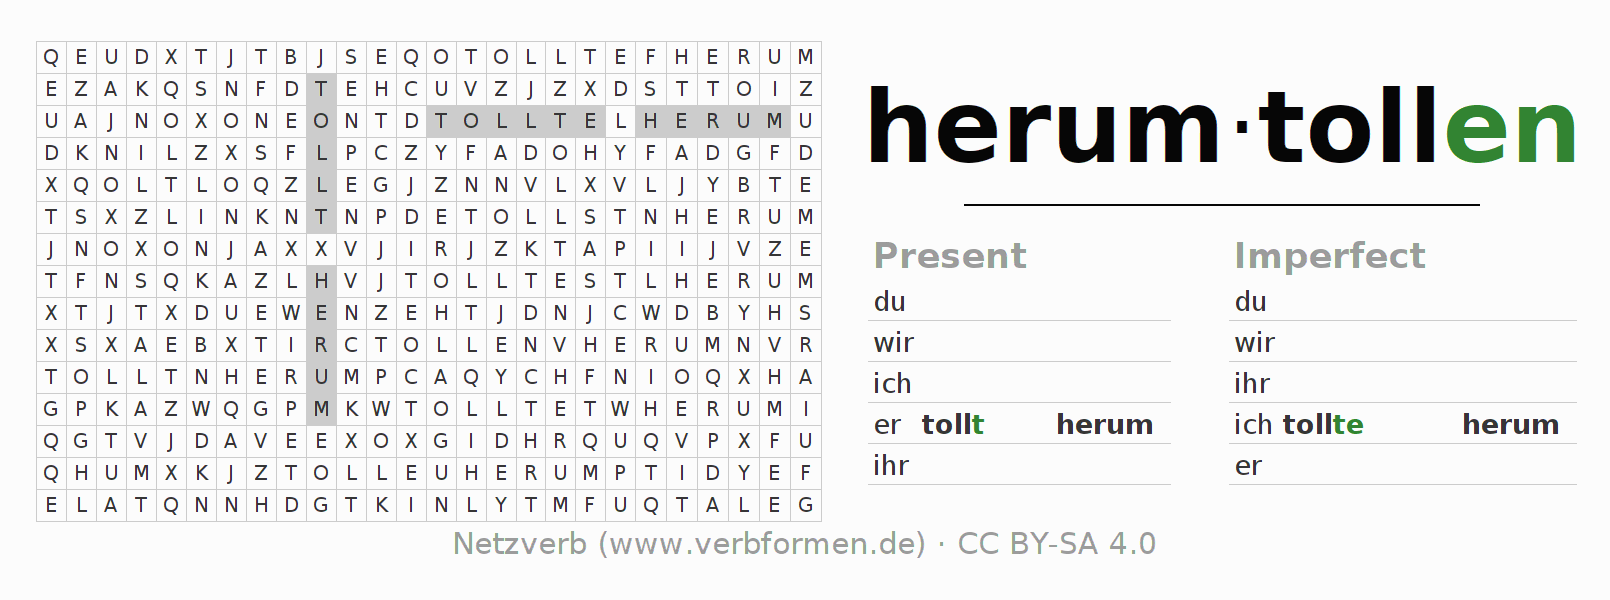 Word search puzzle for the conjugation of the verb herumtollen